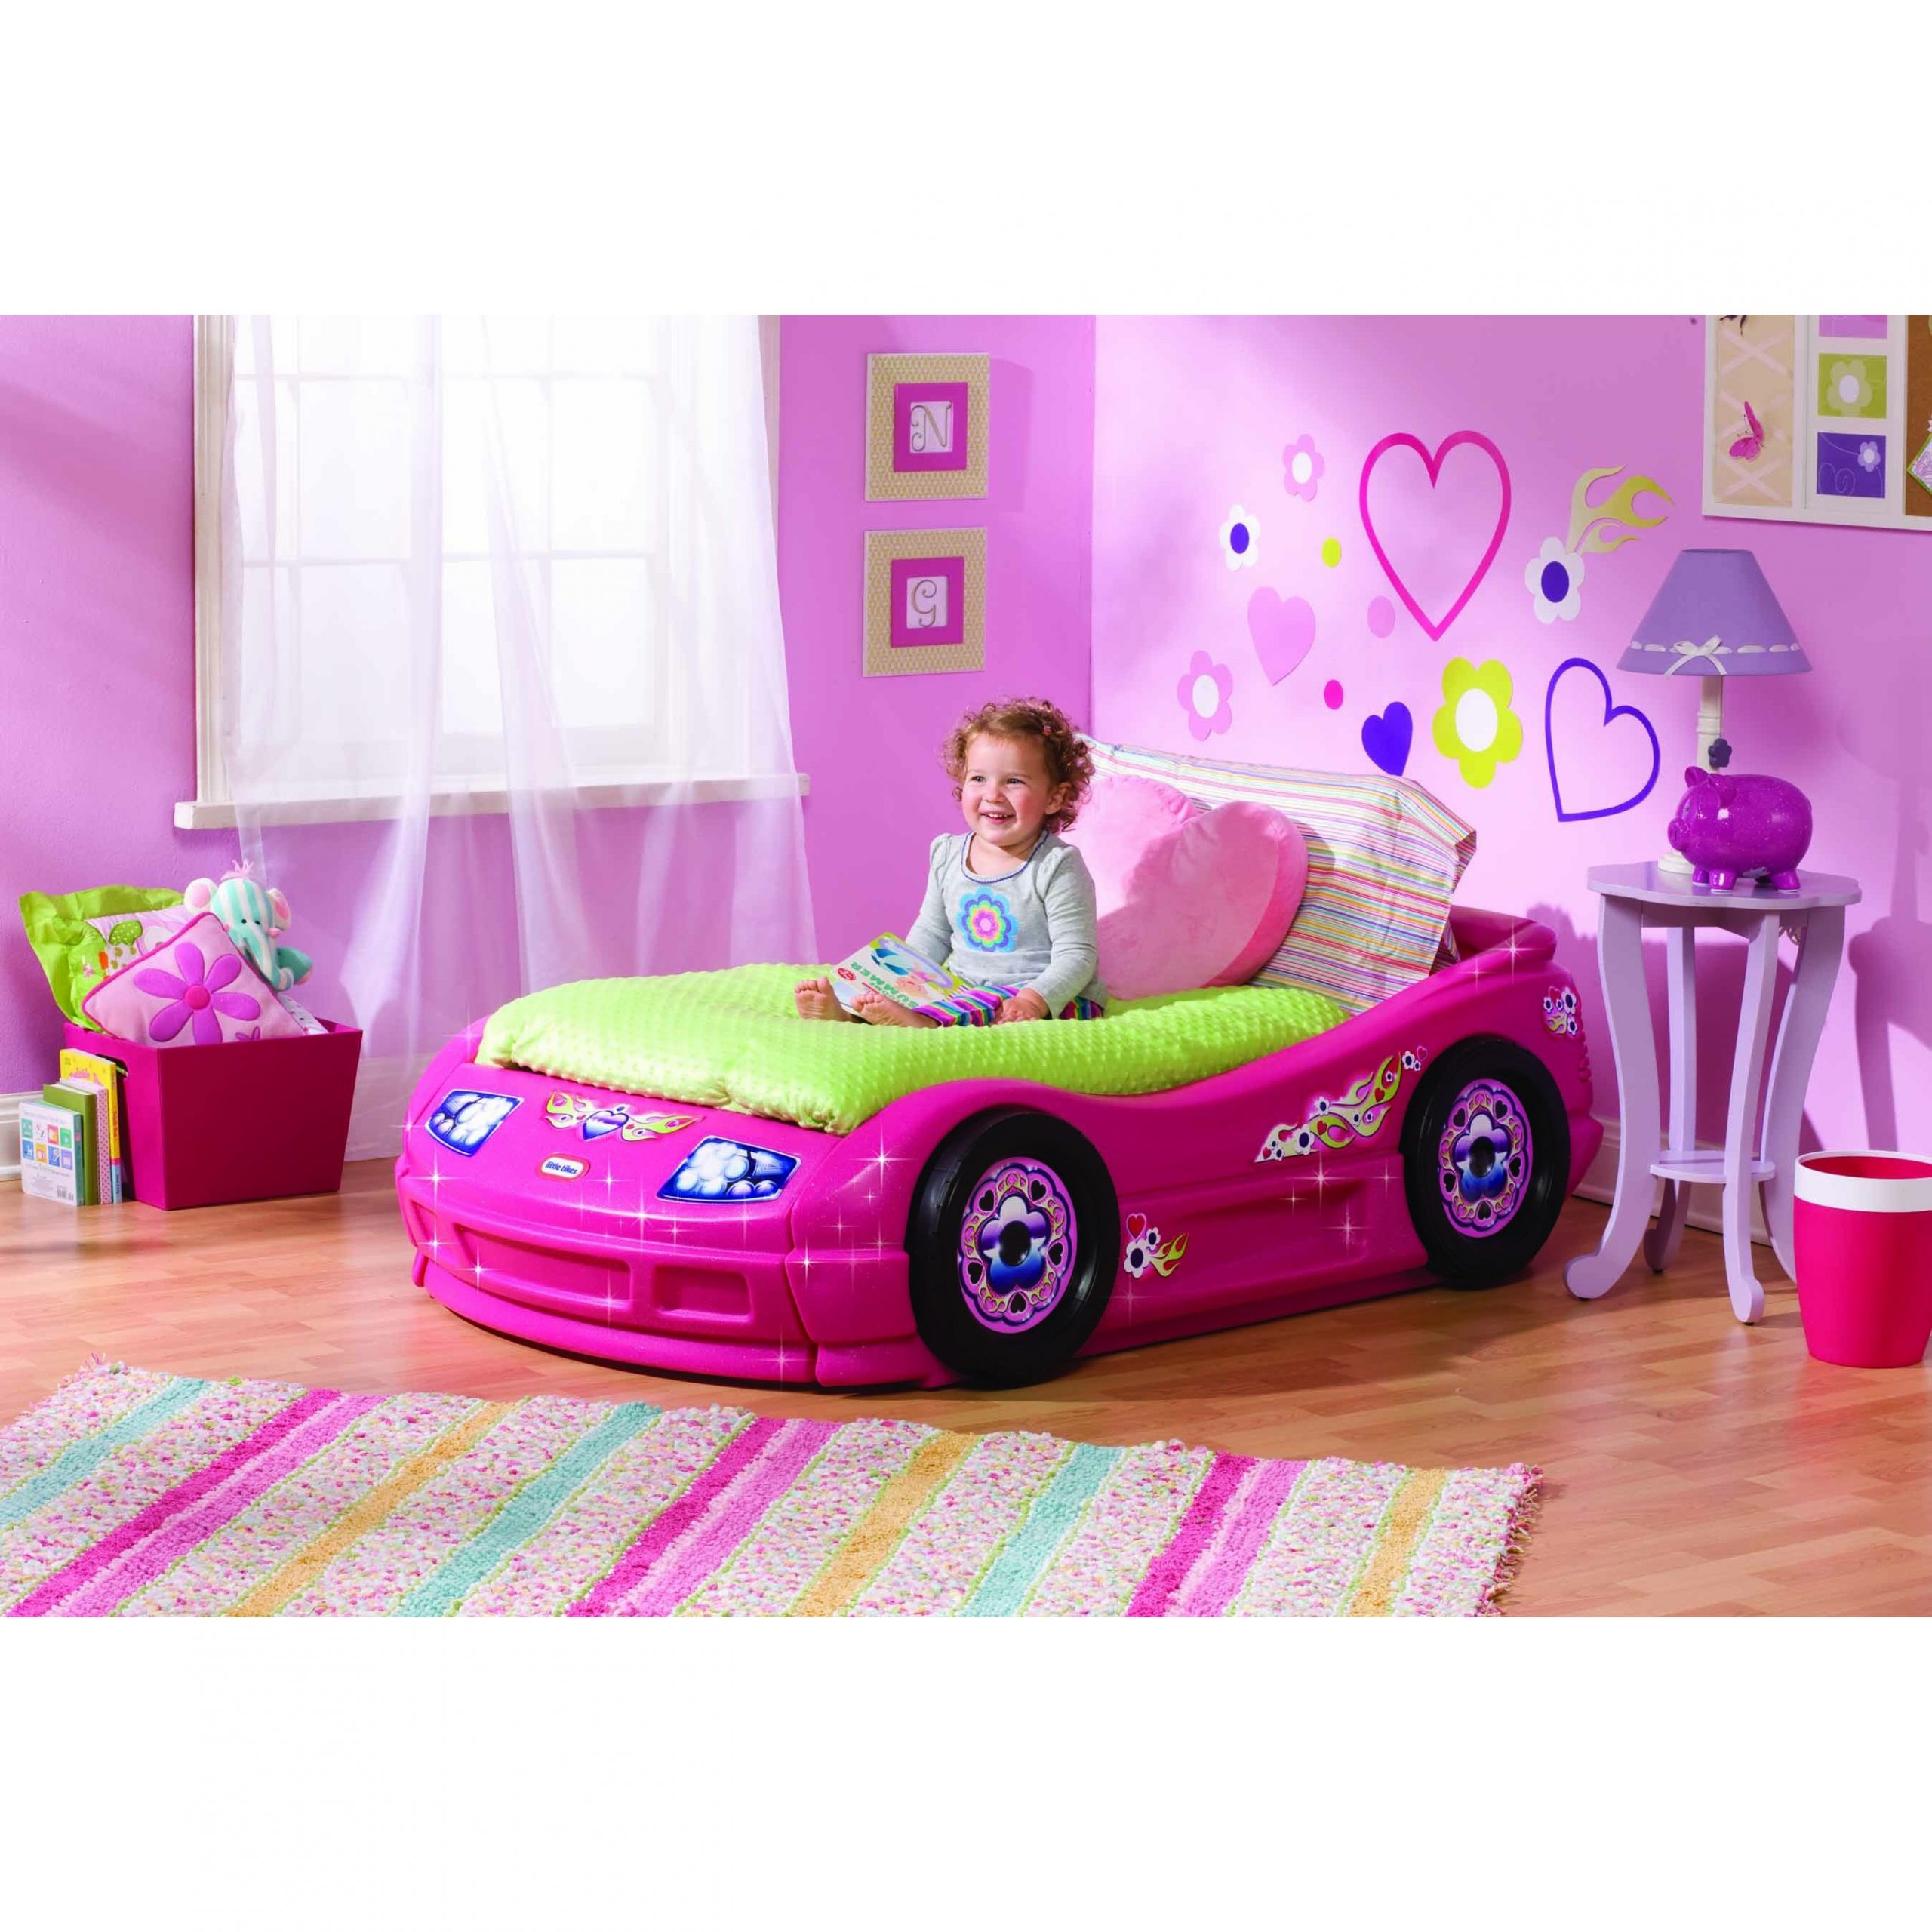 Little Tikes Princess Pink Toddler Roadster Bed - The Advantages and Disadvantages 4